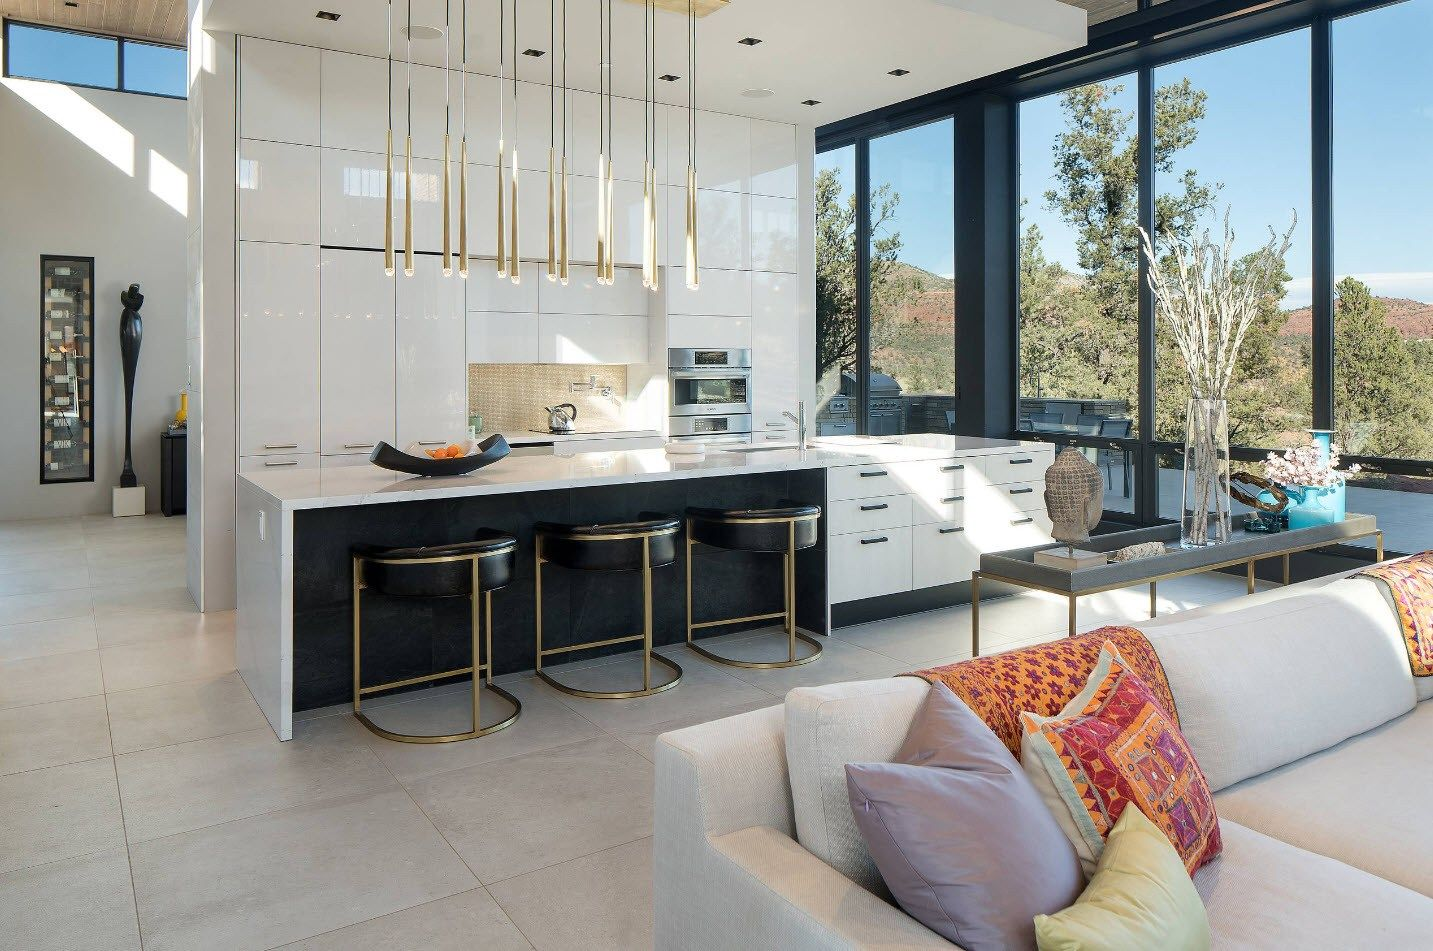 The row of pendant lamps over the cooking top of modern light kitchen